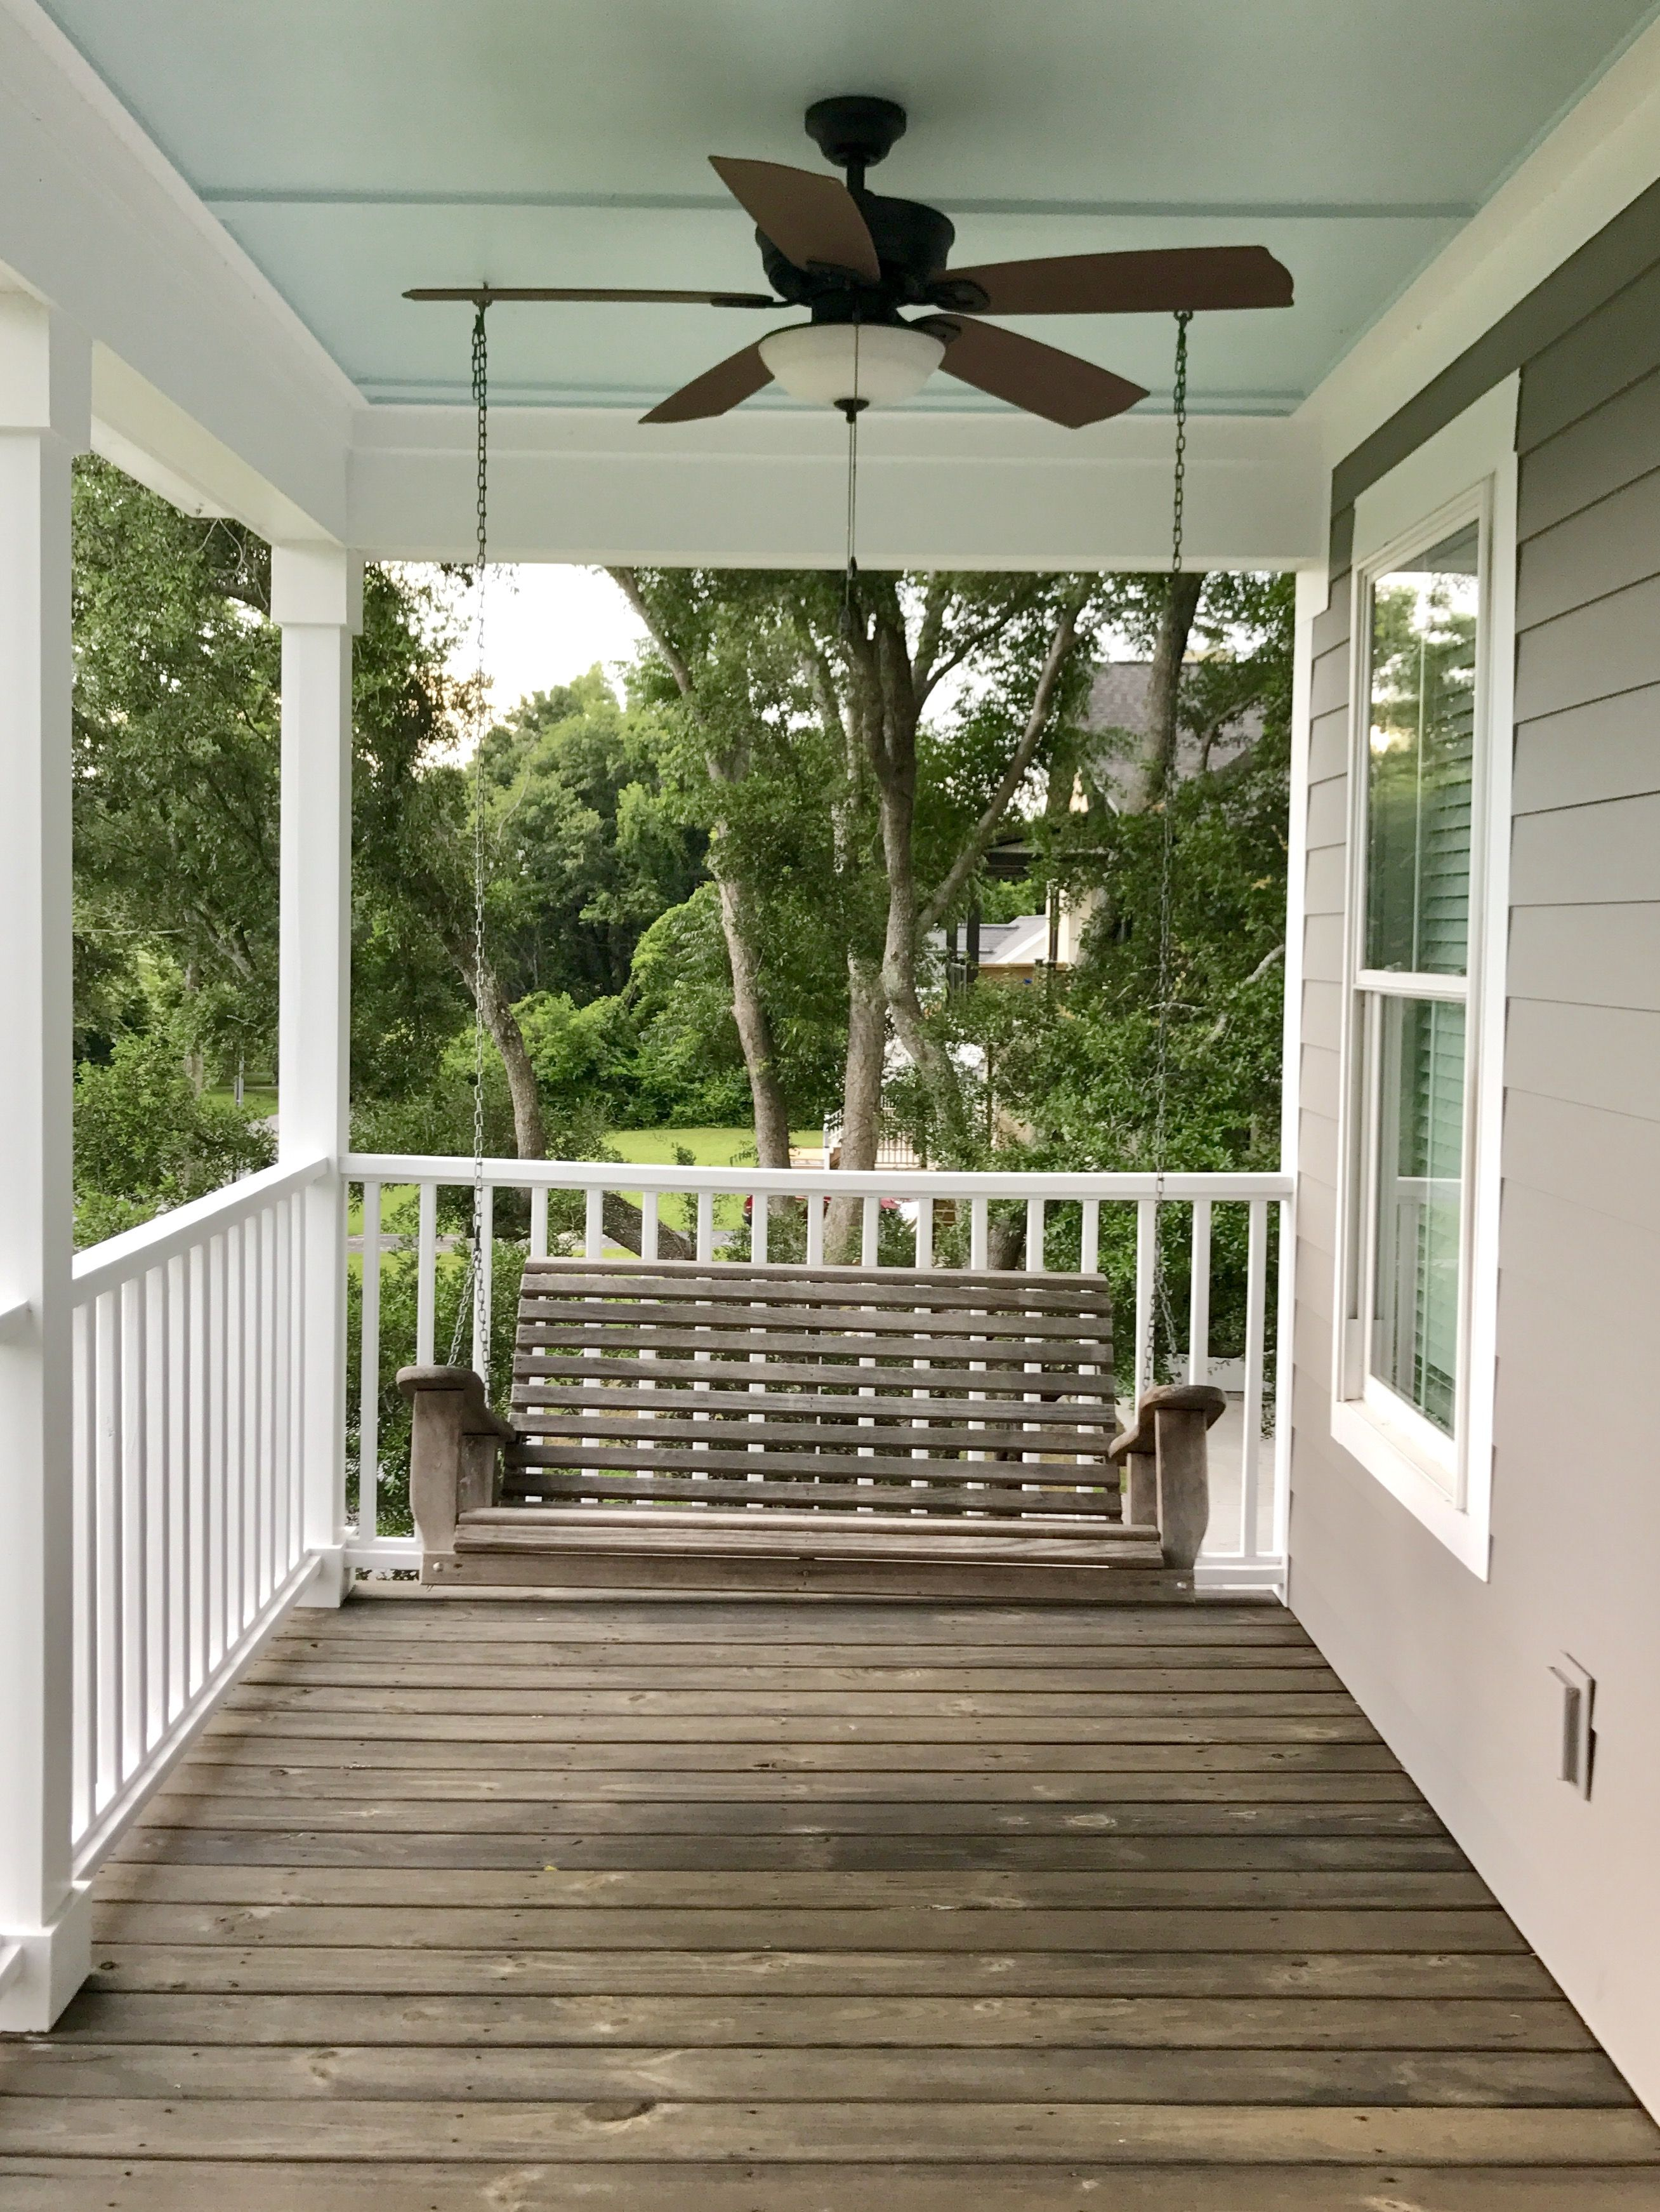 Garden Update June 2018 We Painted The Porch And Started Planking The Garage Patio Inspiration Outdoor Area Rugs Decks Boho Patio